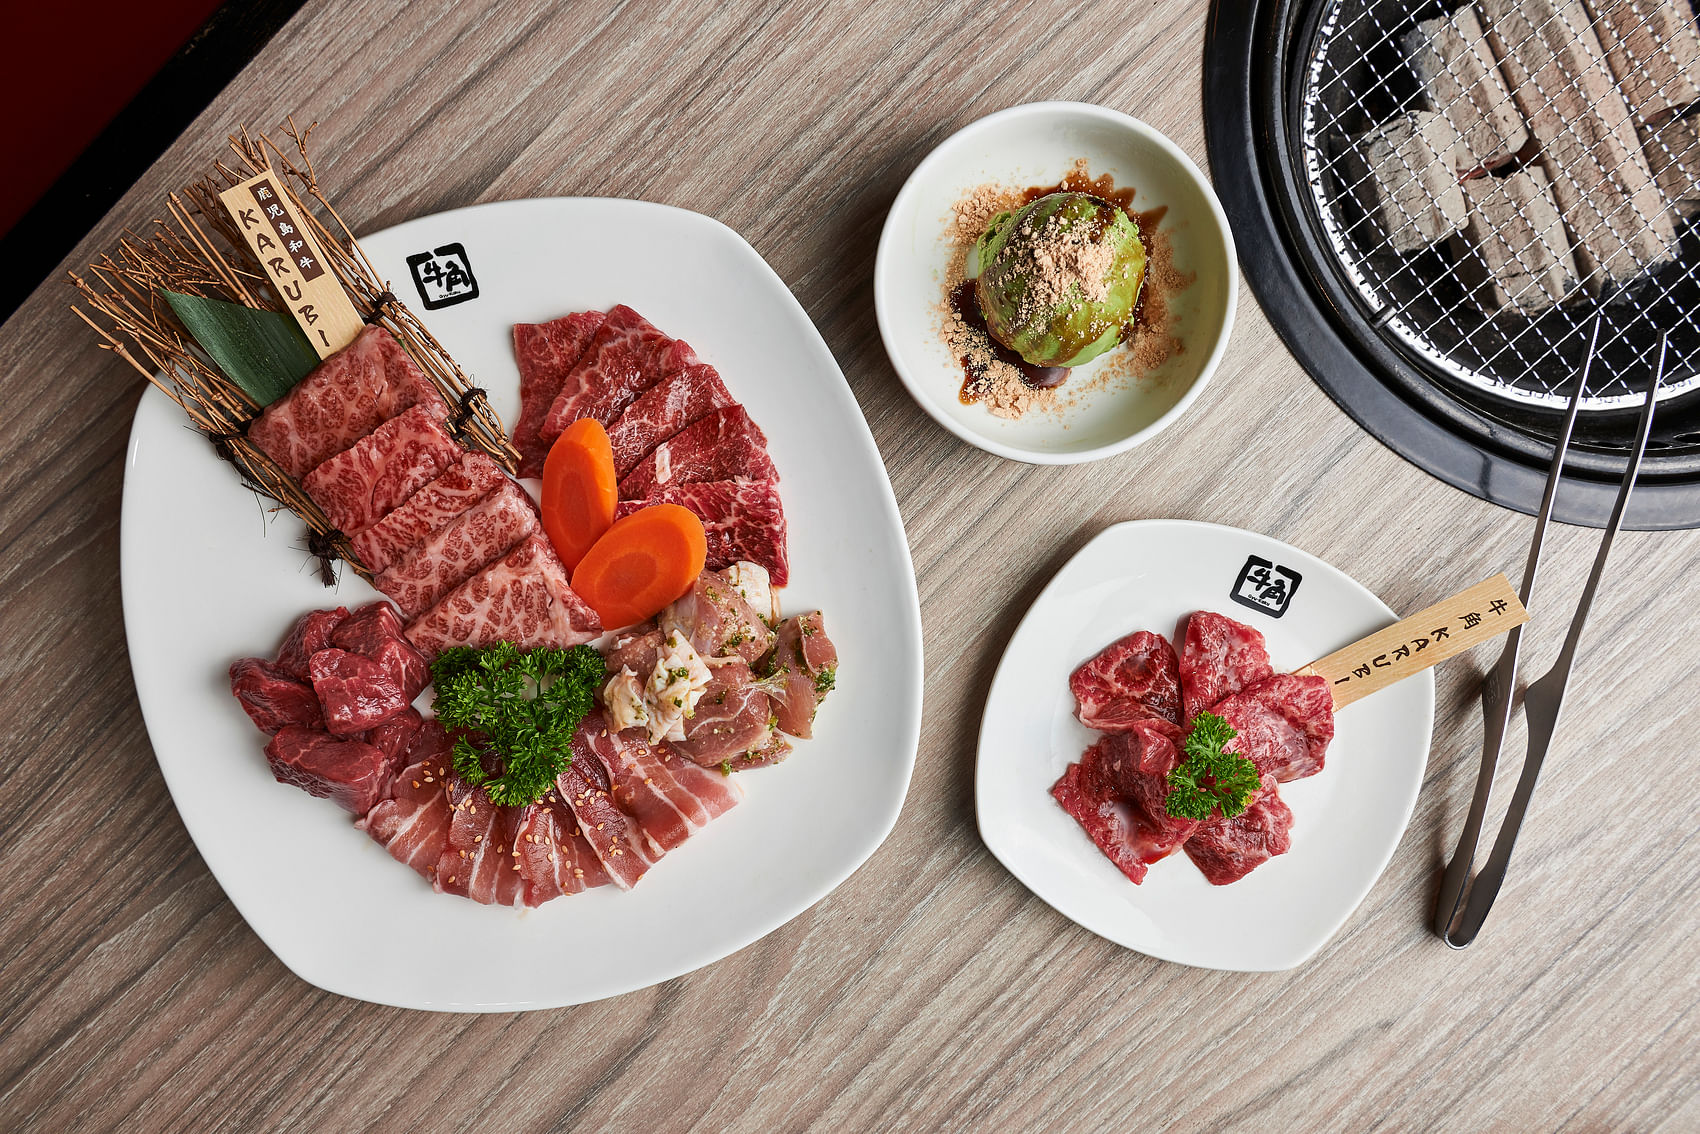 Gyu-Kaku specialises in Japanese barbecued meats. The Gyu-Kaku Recommended Platter is a must-try.